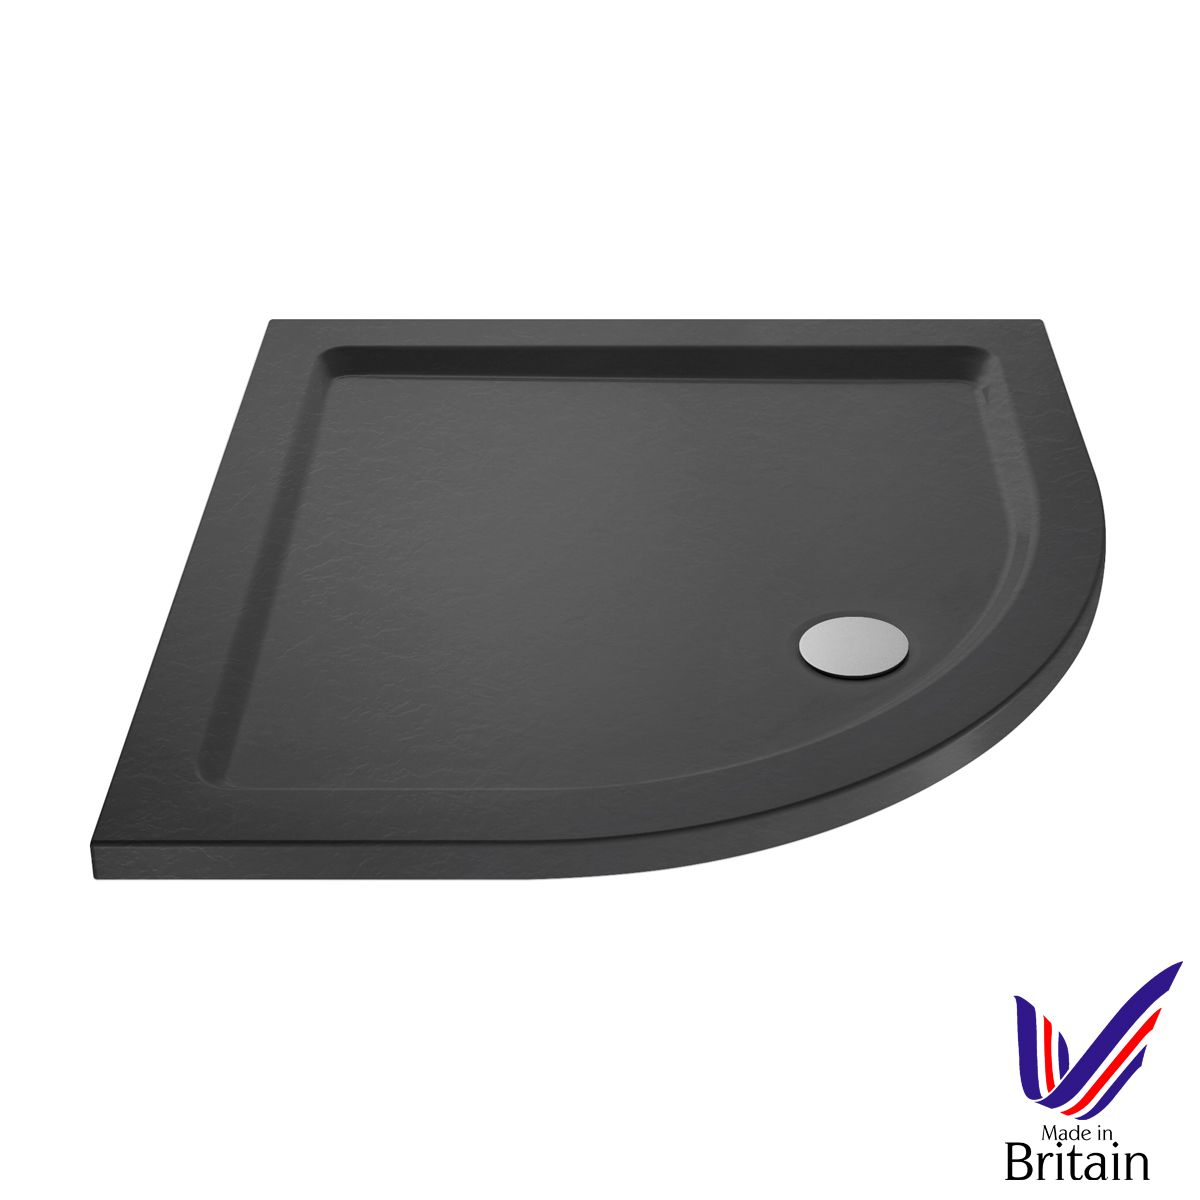 900 x 900 Shower Tray Slate Grey Quadrant Low Profile by Pearlstone